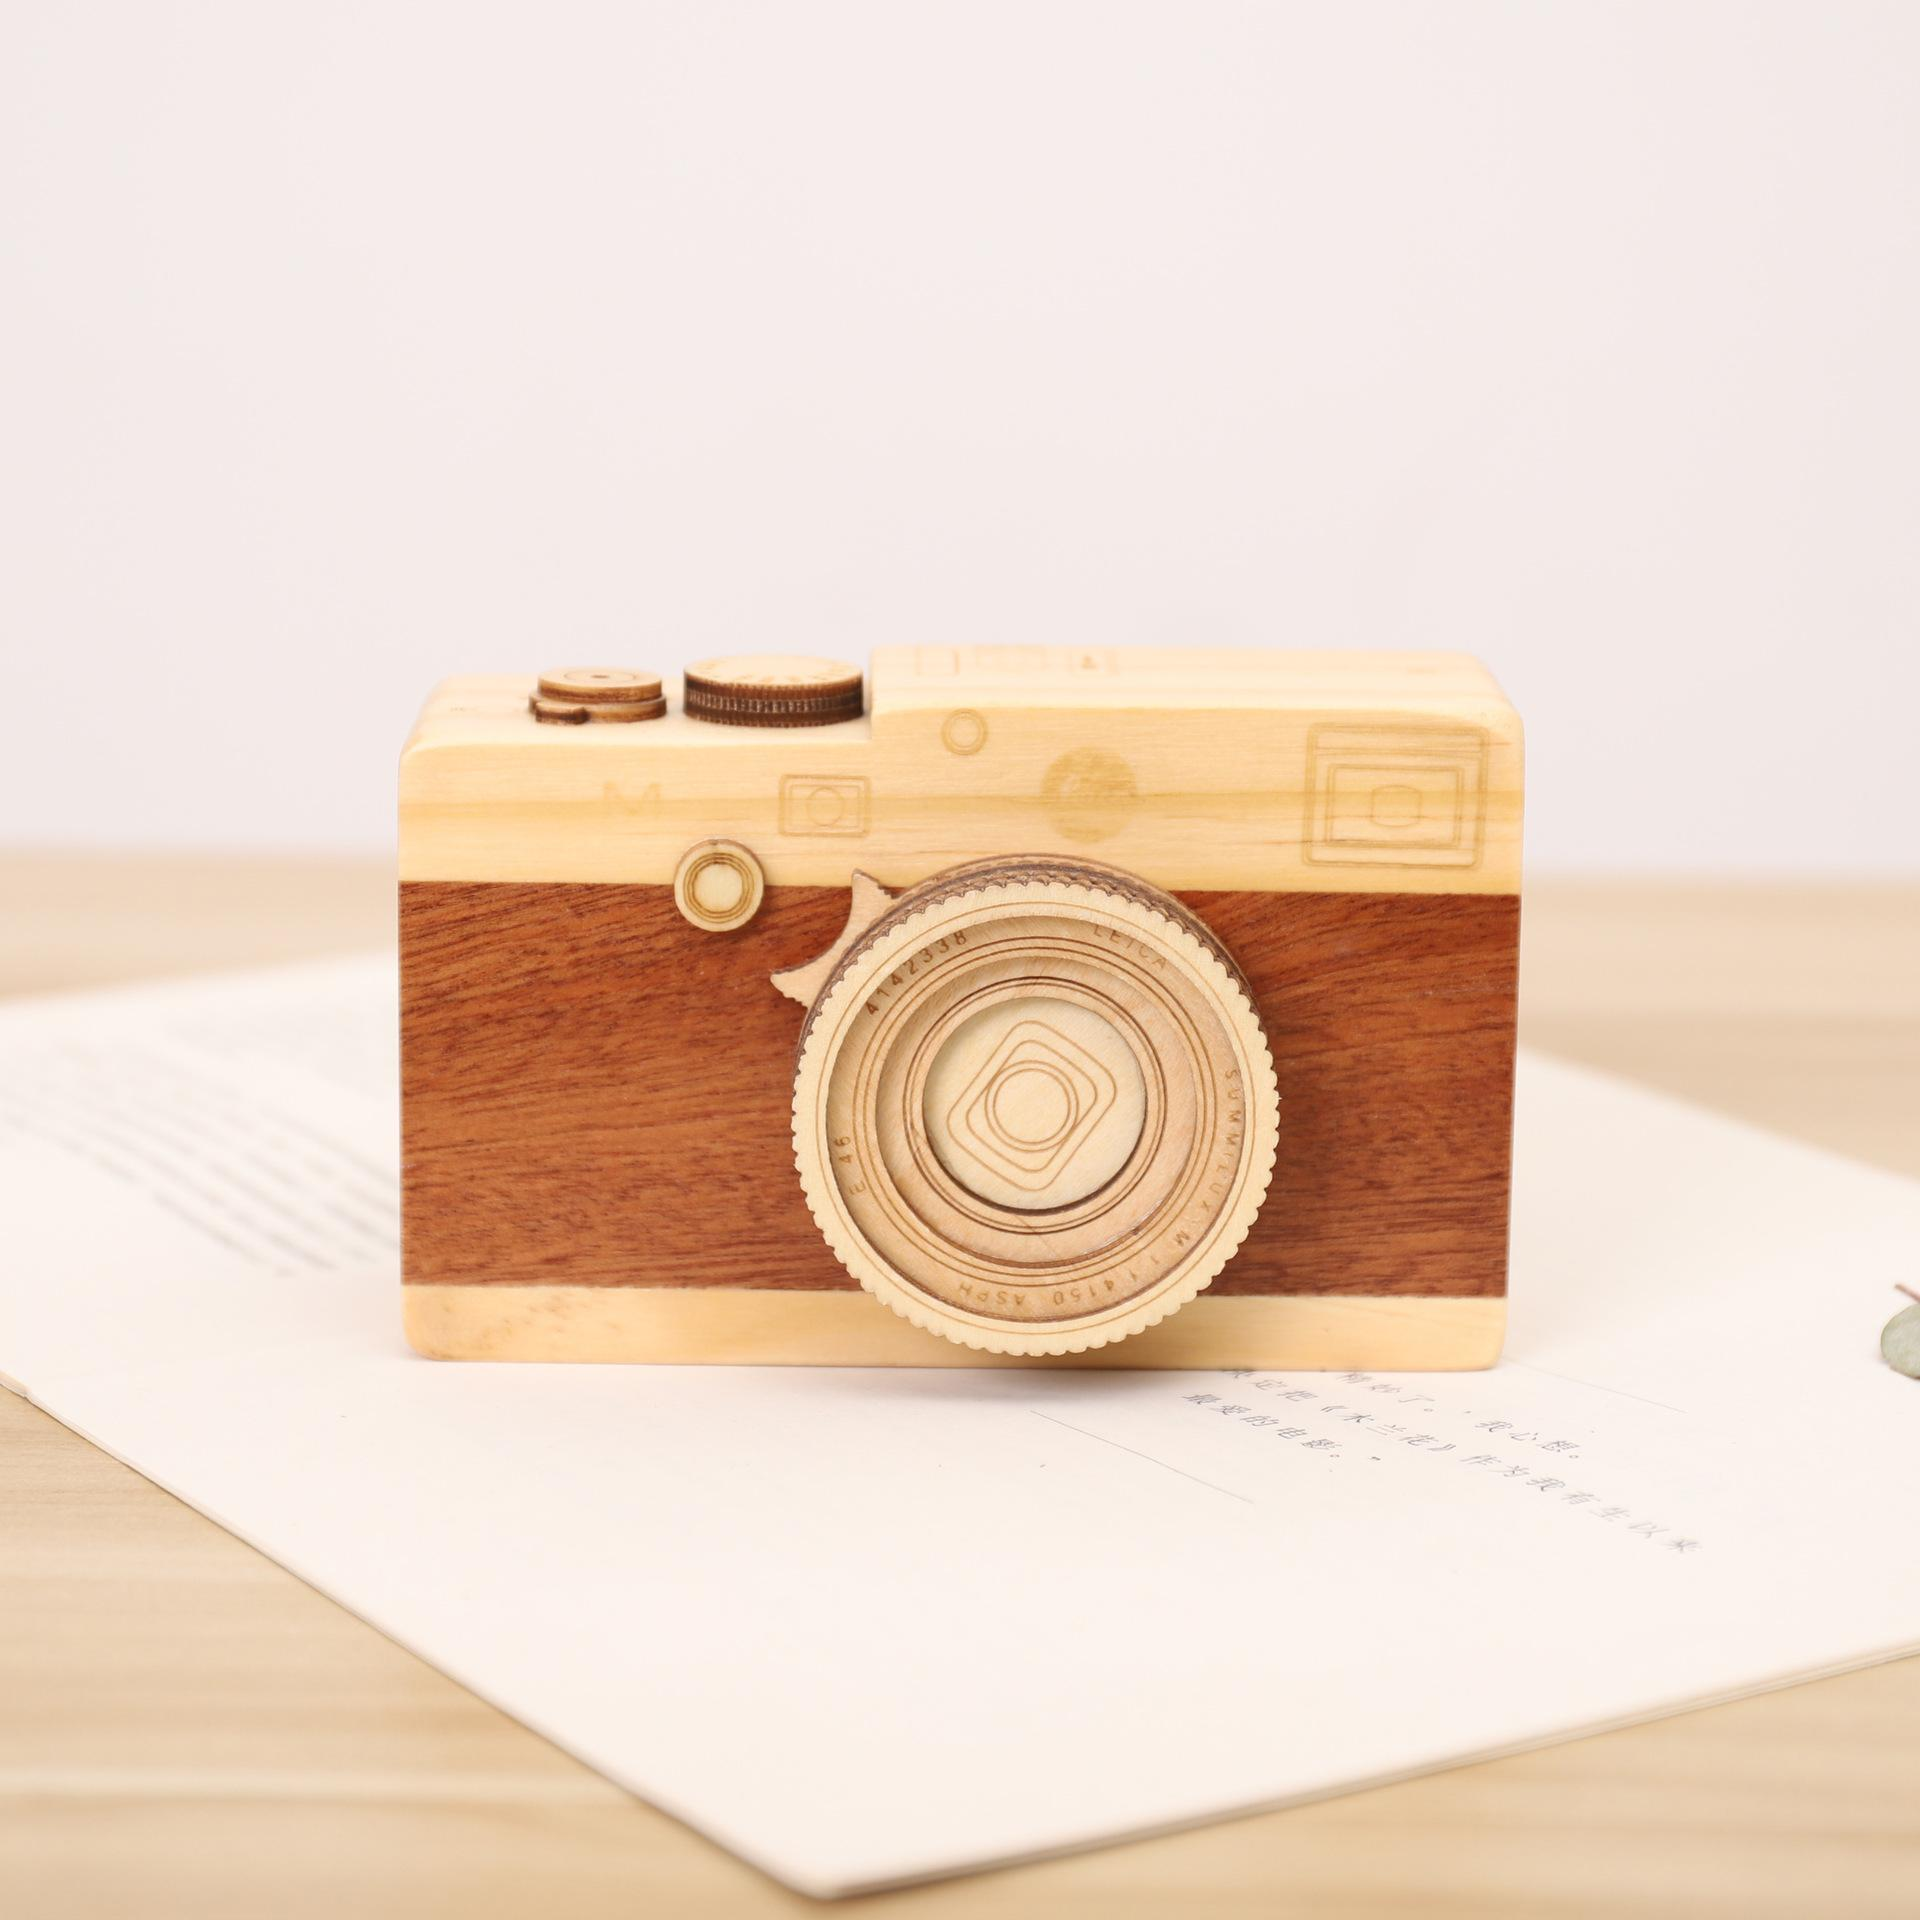 I modelli macchina fotografica in legno Music Box Retro creativo Camera Music Box regalo di compleanno Music Box